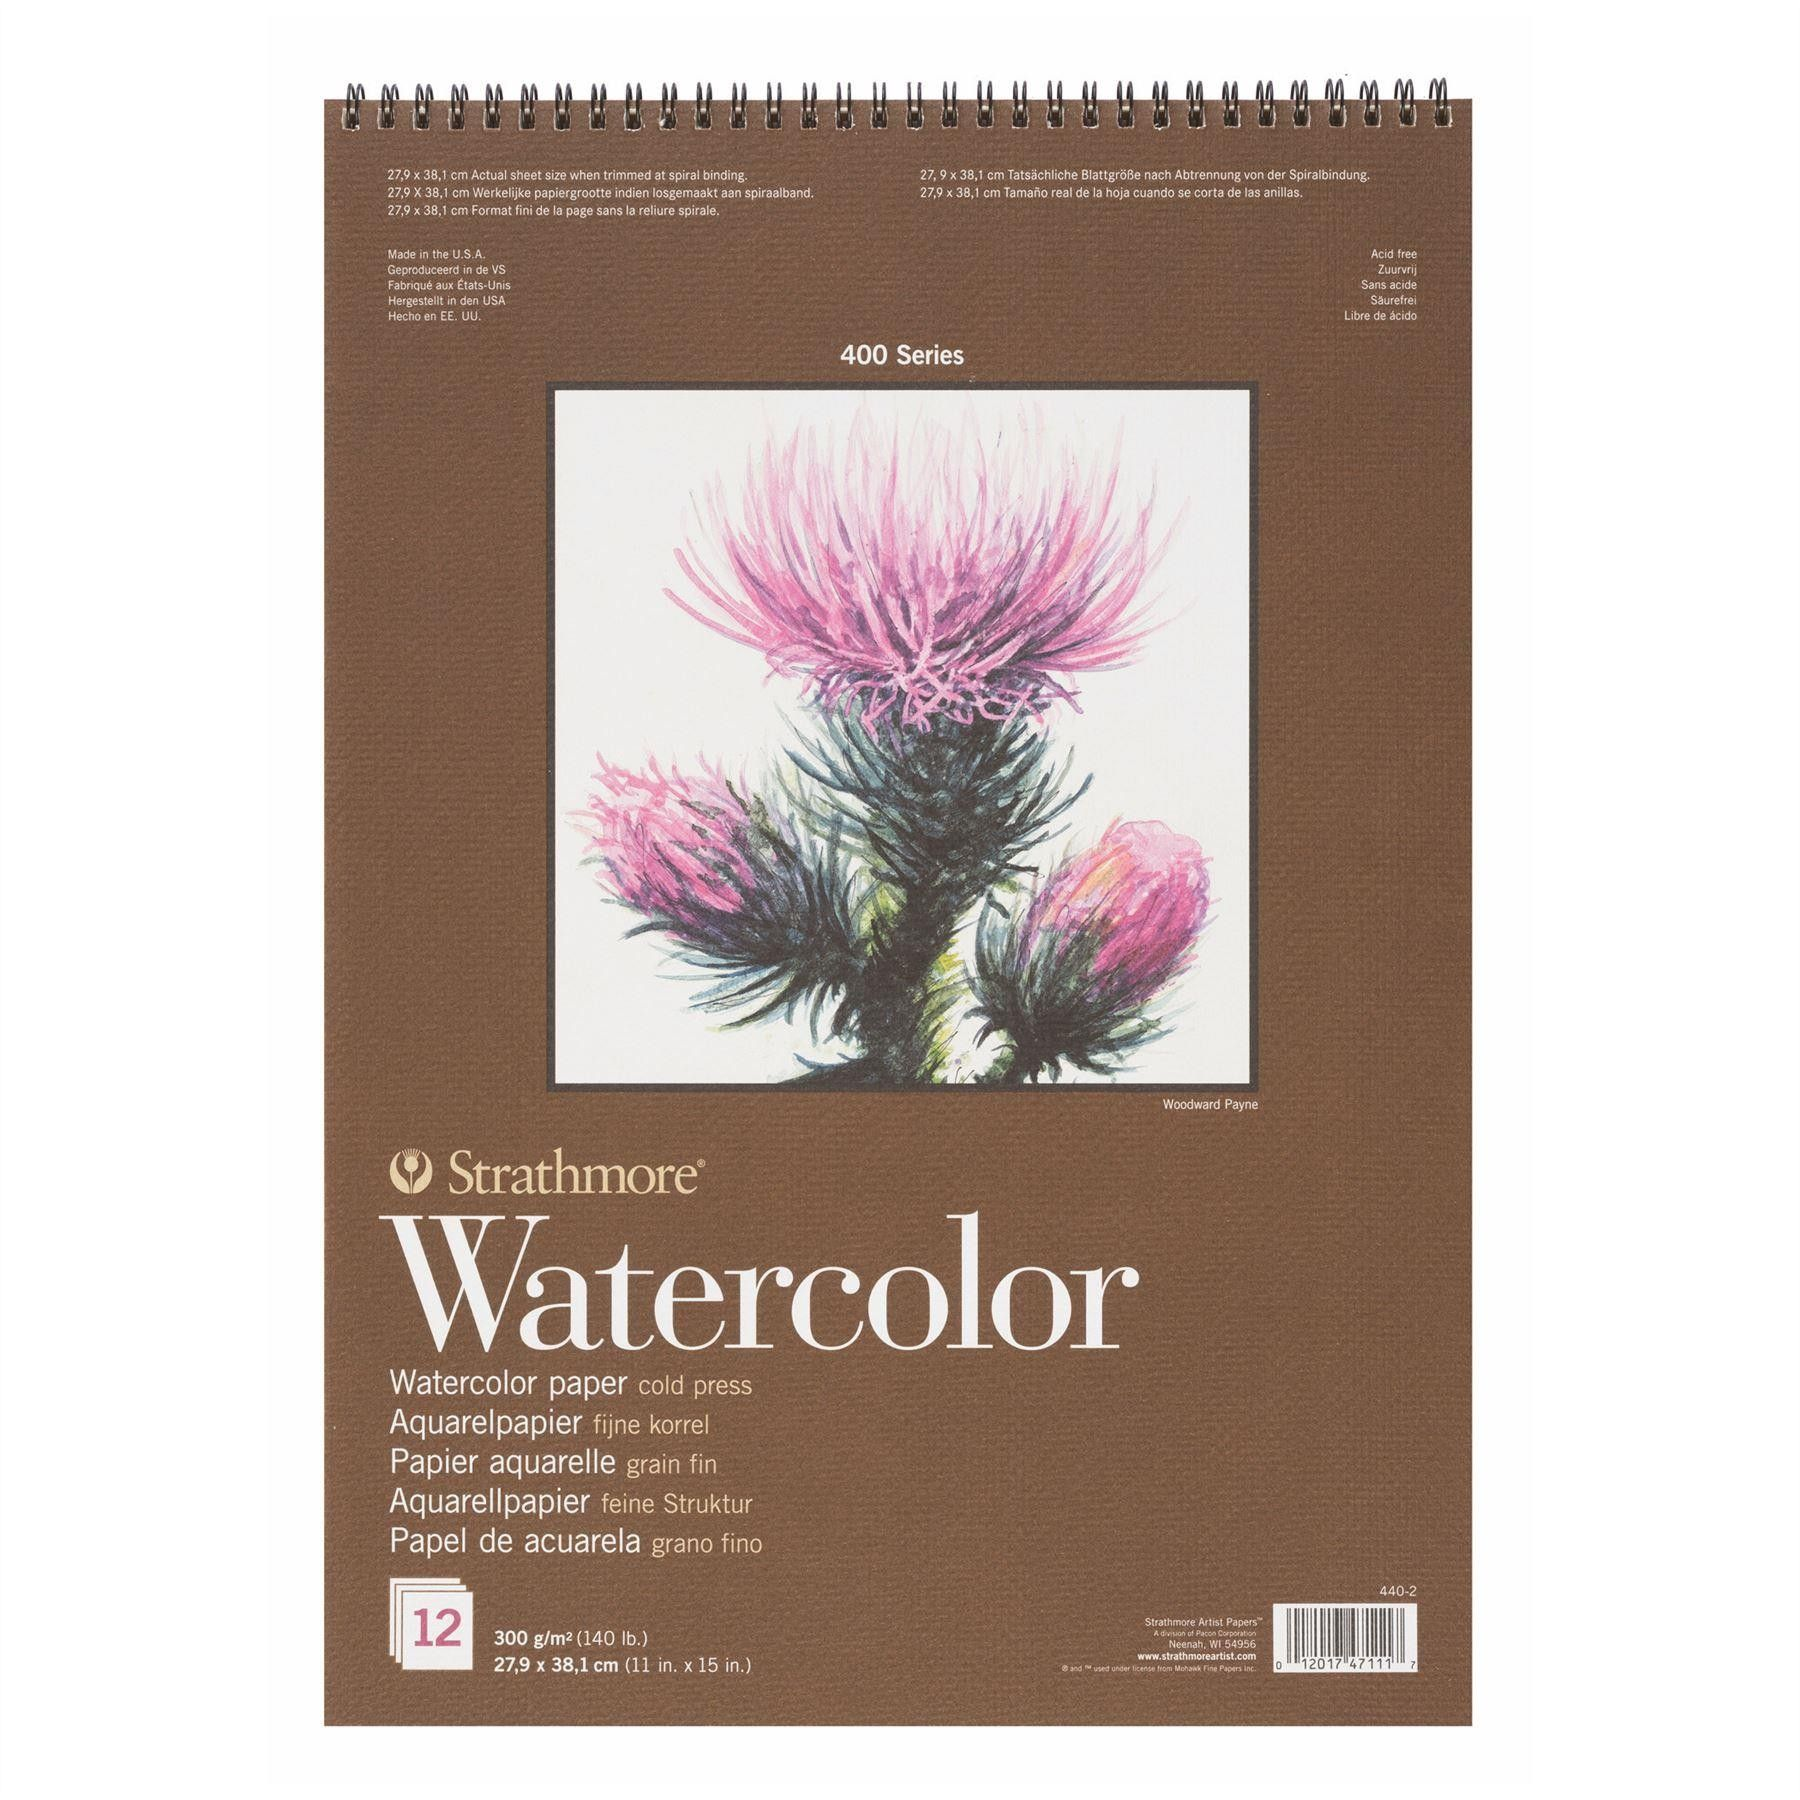 Strathmore 400 Watercolour Pad 27 9 X 38 1 12 Sheets 300gsm